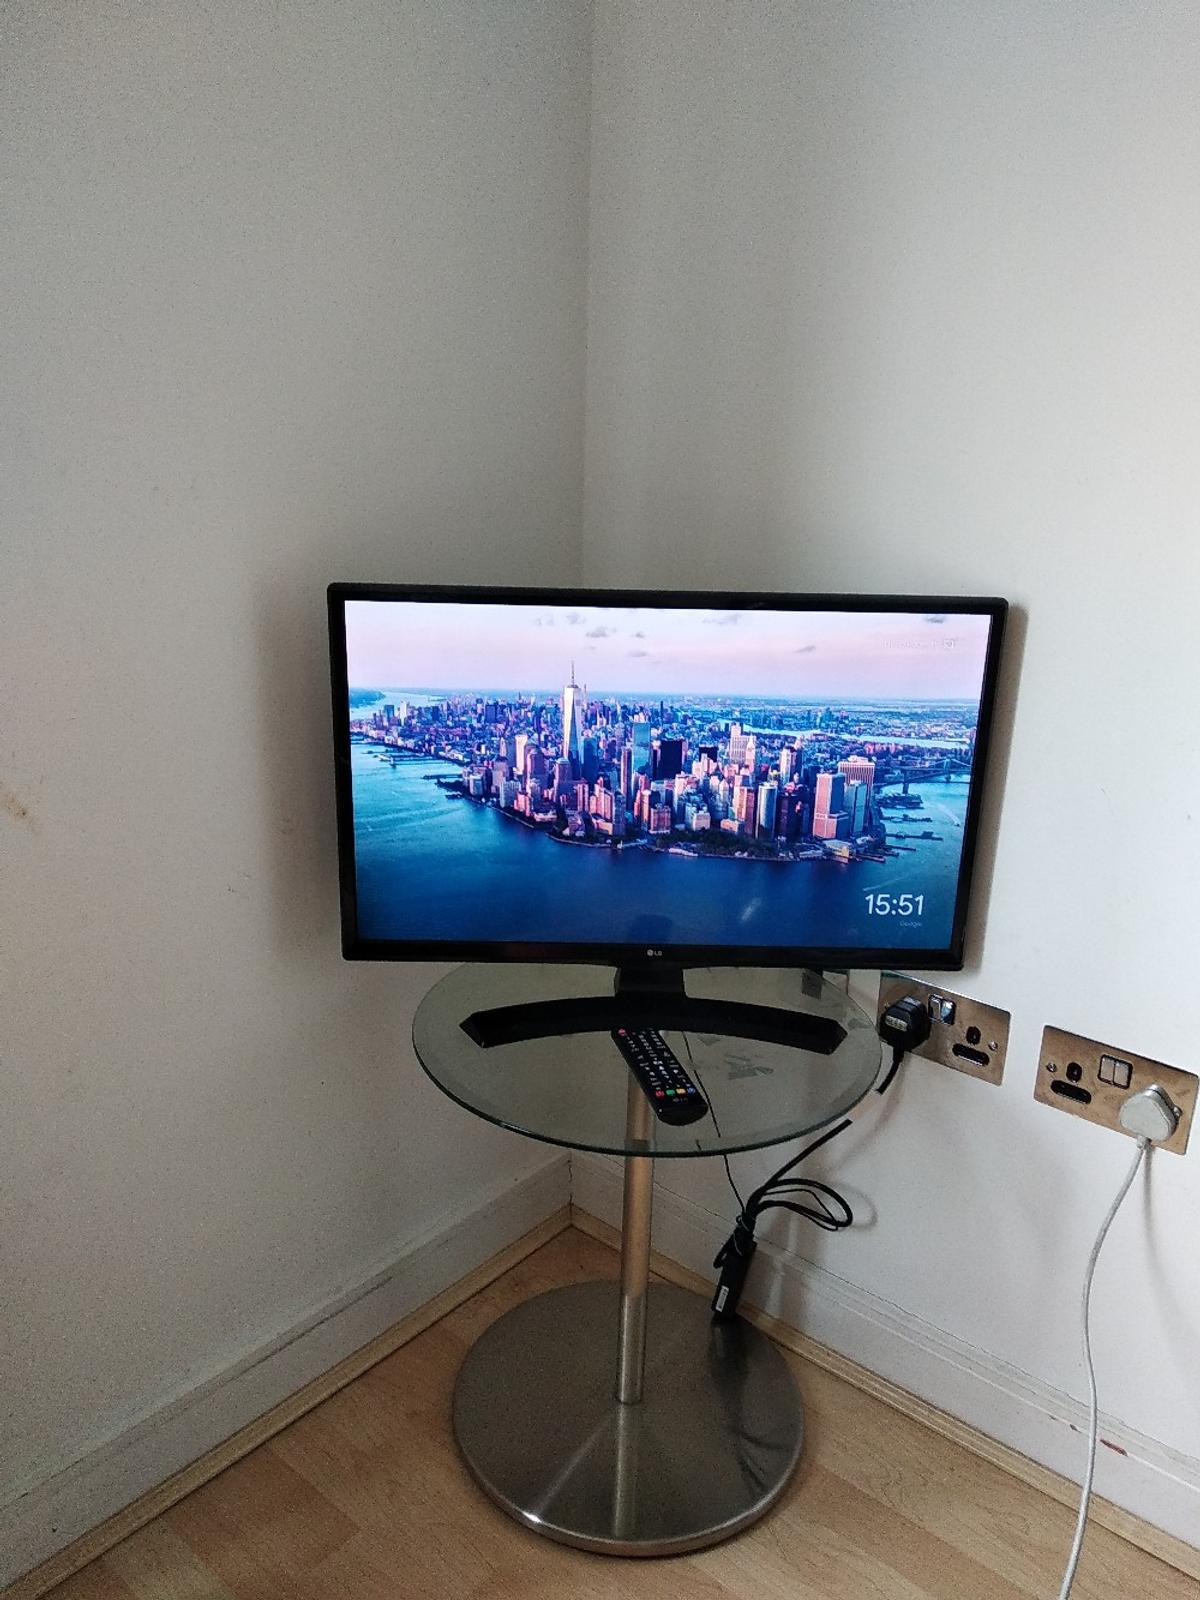 Phenomenal Lg 28 Inch Lcd Tv In E16 London For 100 00 For Sale Shpock Download Free Architecture Designs Pushbritishbridgeorg